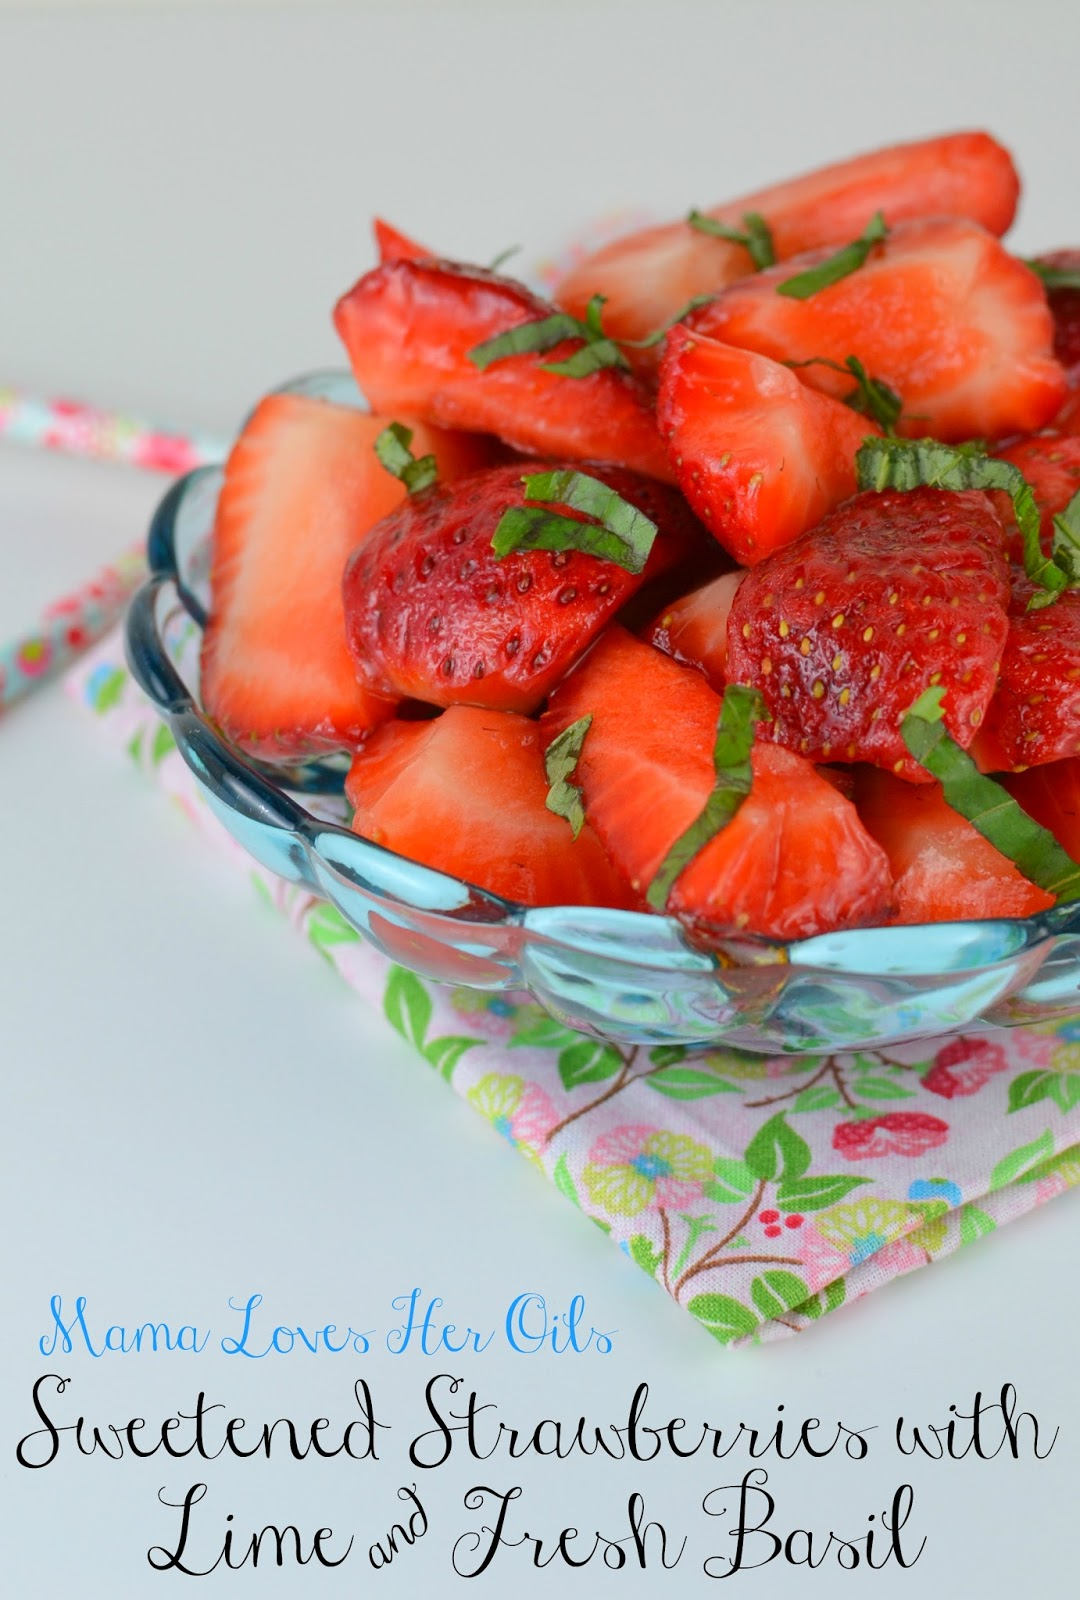 Sweetened fresh strawberries with lime essential oil and fresh basil sweetened fresh strawberries with lime essential oil and fresh basil recipe forumfinder Gallery